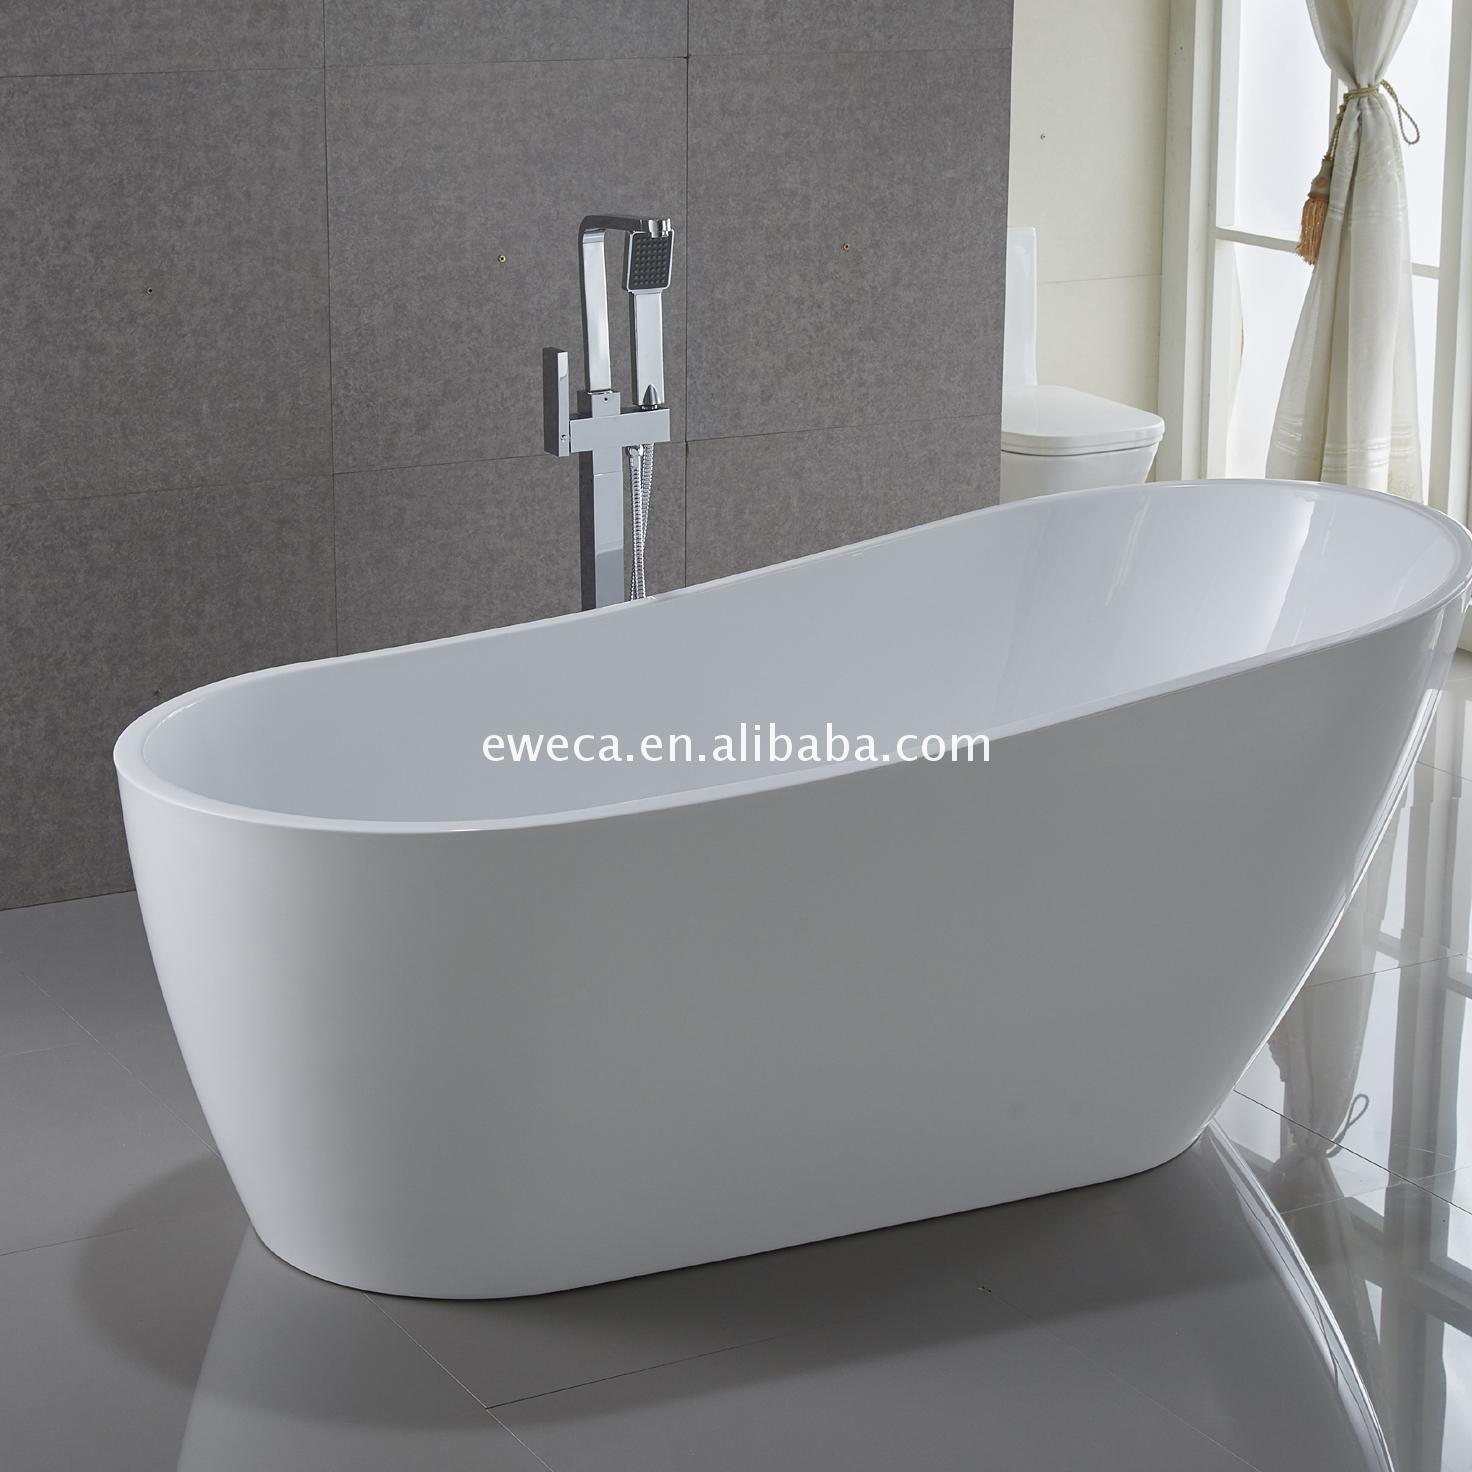 Hammered Copper Bathtub, Hammered Copper Bathtub Suppliers and ...